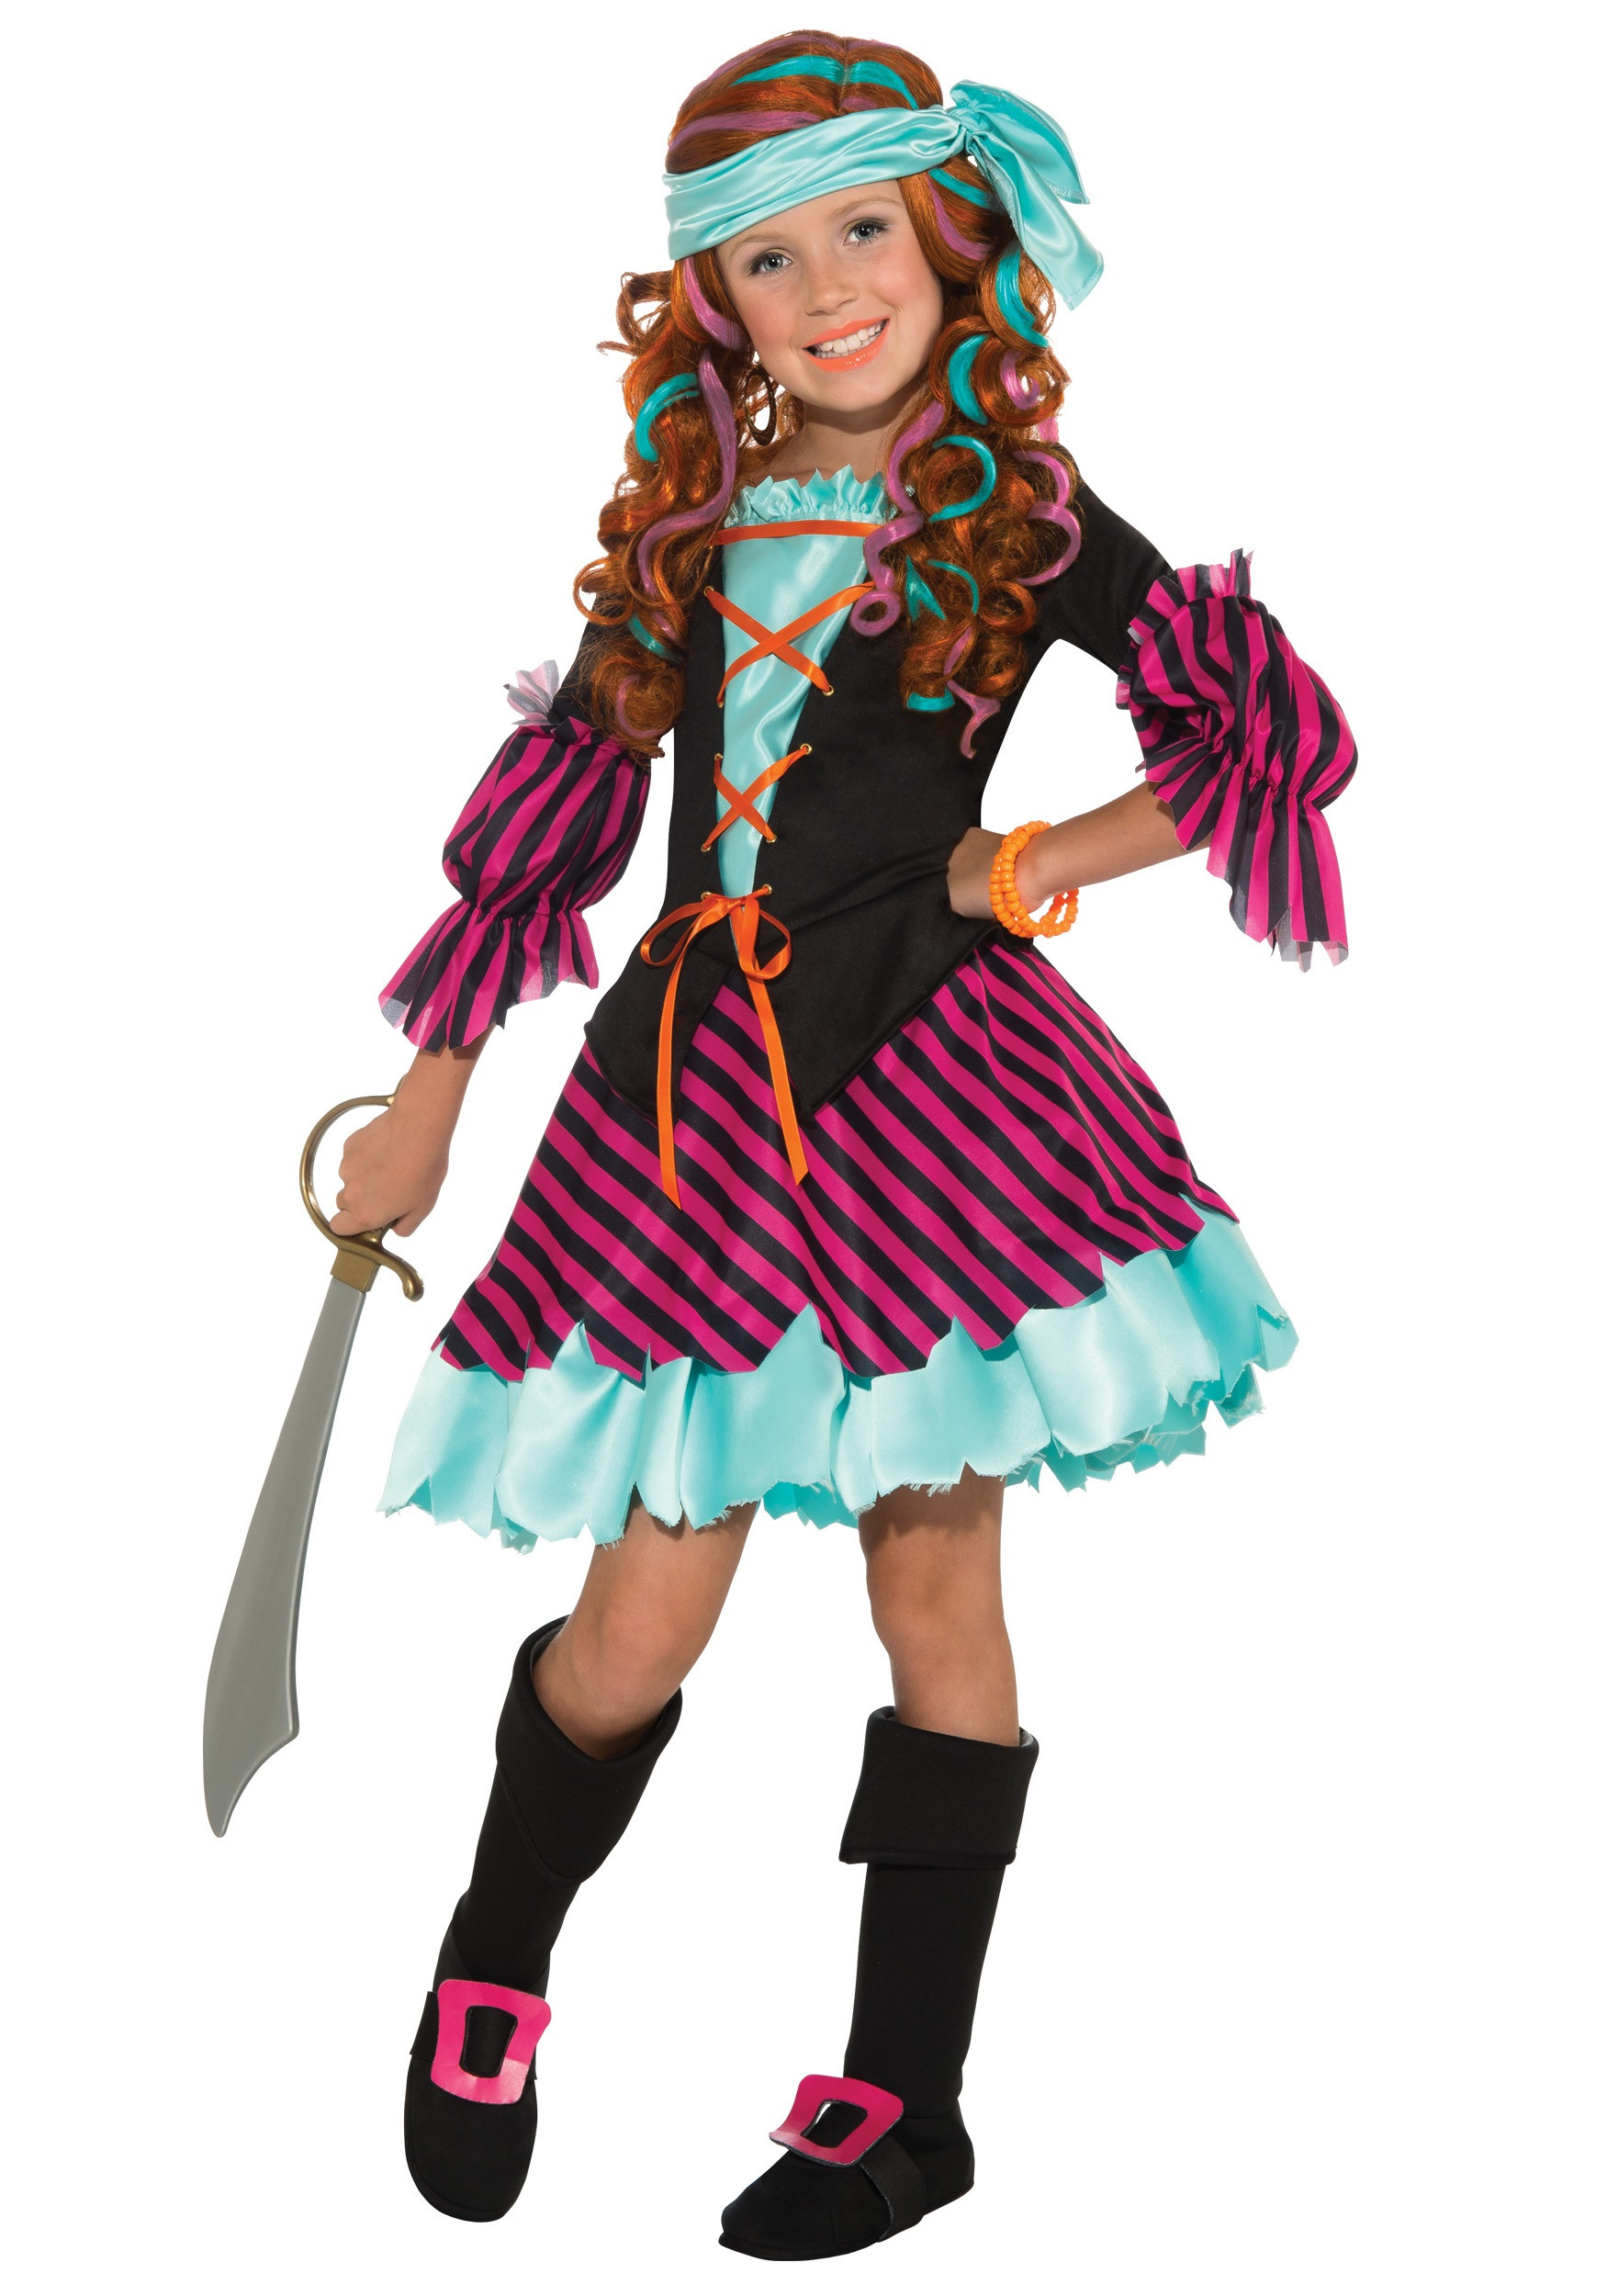 Best ideas about DIY Costumes For Girls . Save or Pin Salty Taffy Girls Pirate Costume Now.